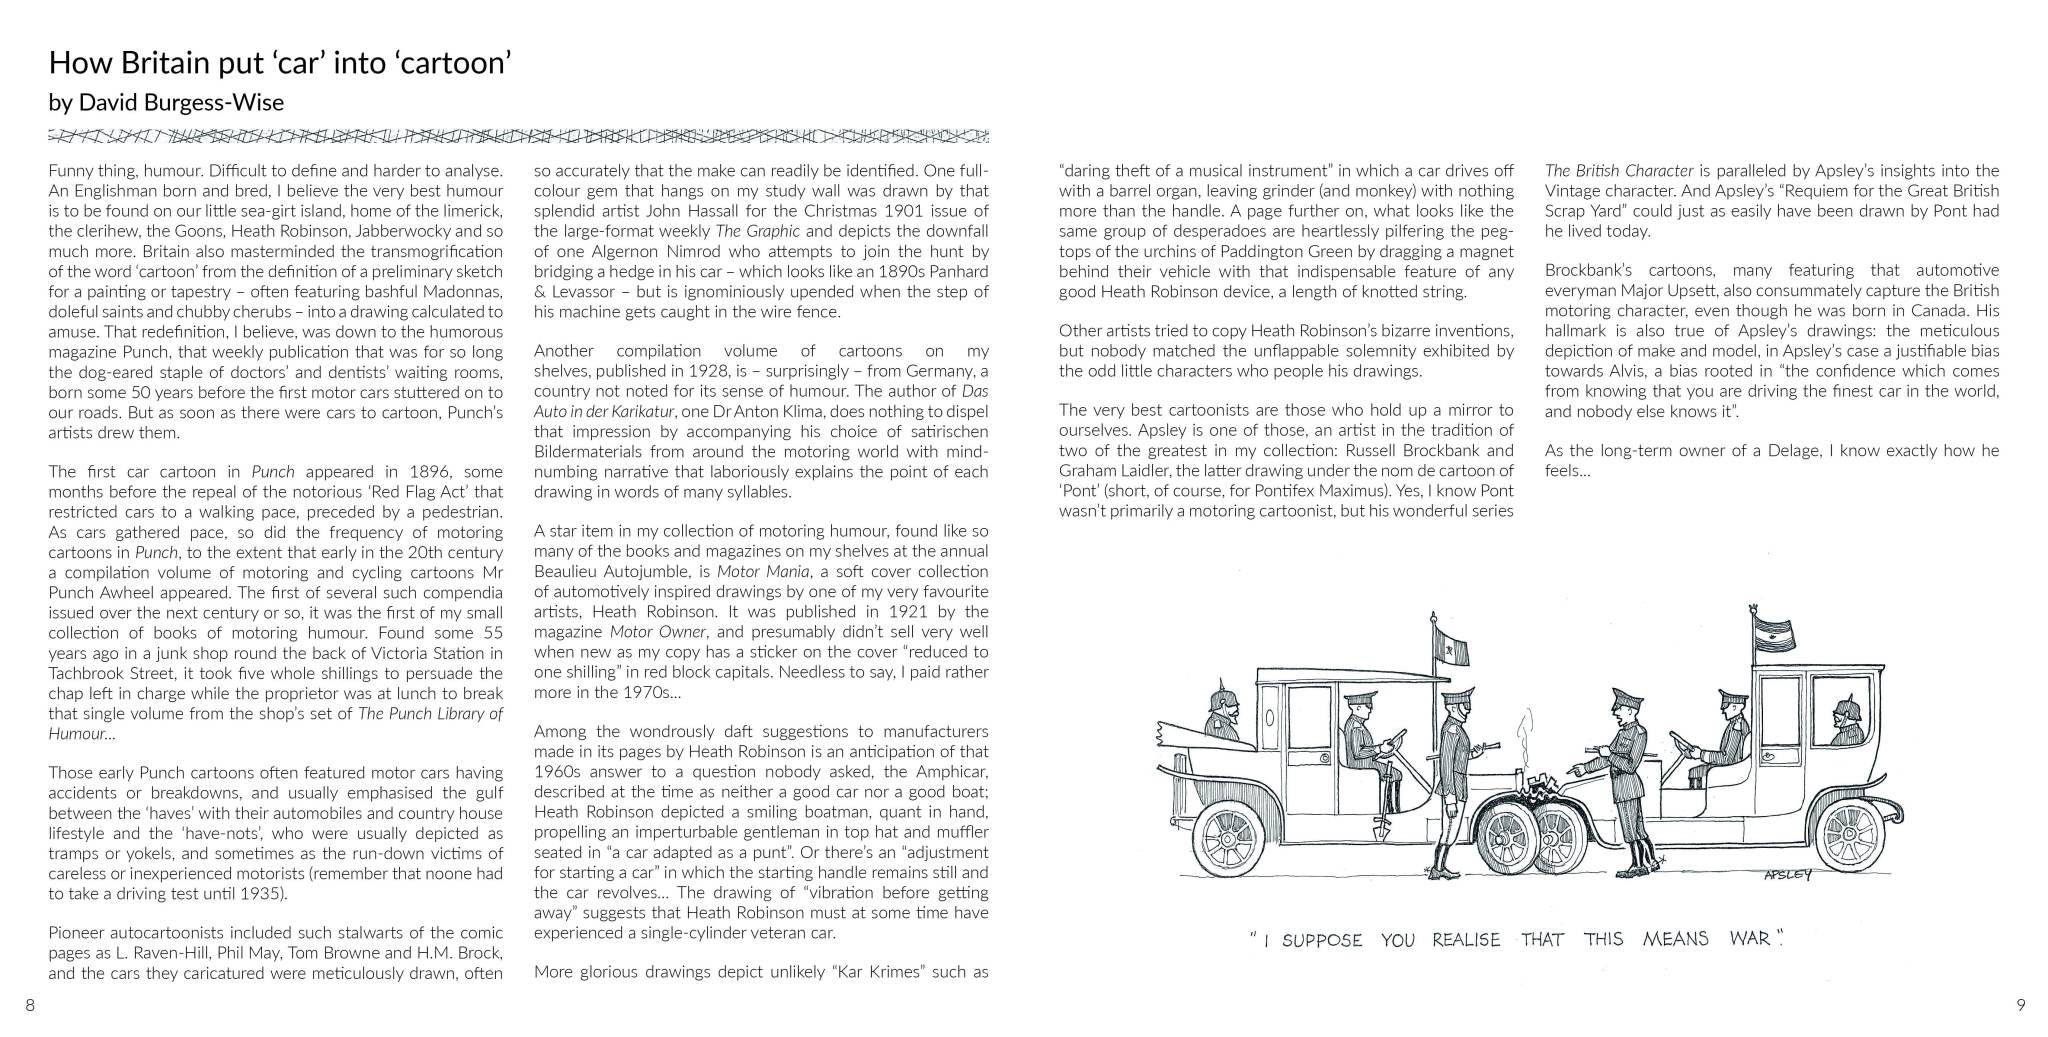 Sample Page | How Britain put 'car' into 'cartoon by David Burgess-Wise | Aplsey and Old Cars